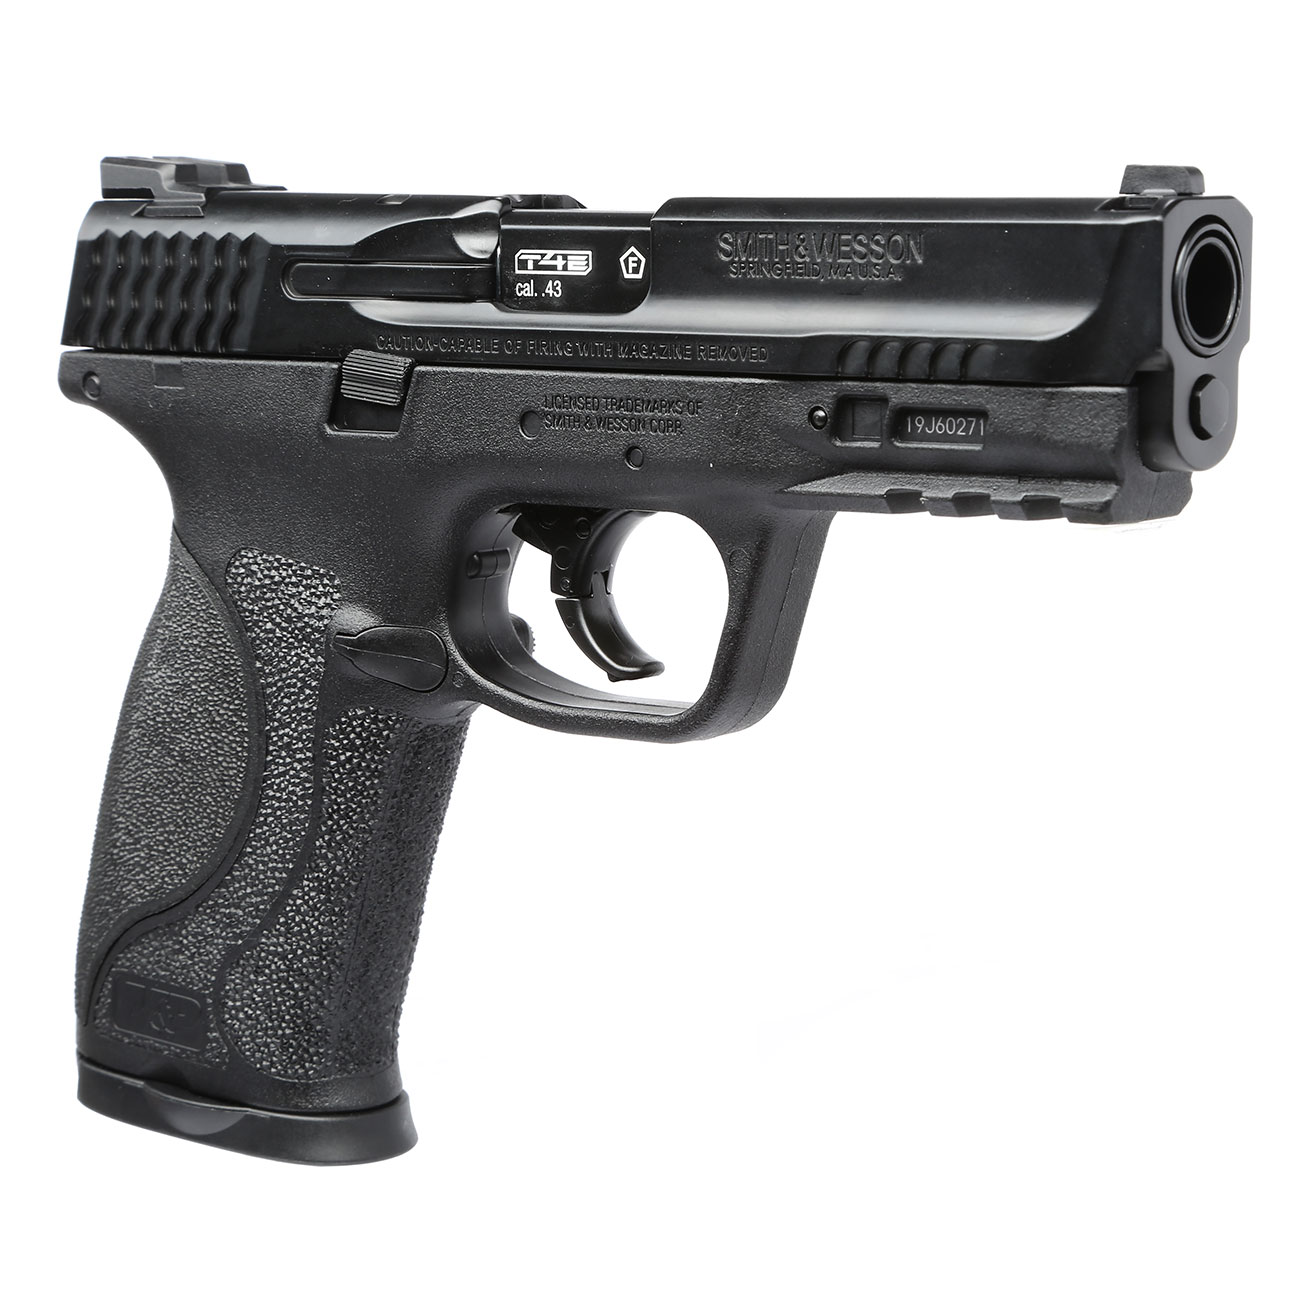 Smith & Wesson M&P9 2.0 T4E CO2-RAM Pistole Kal. 43 schwarz 8